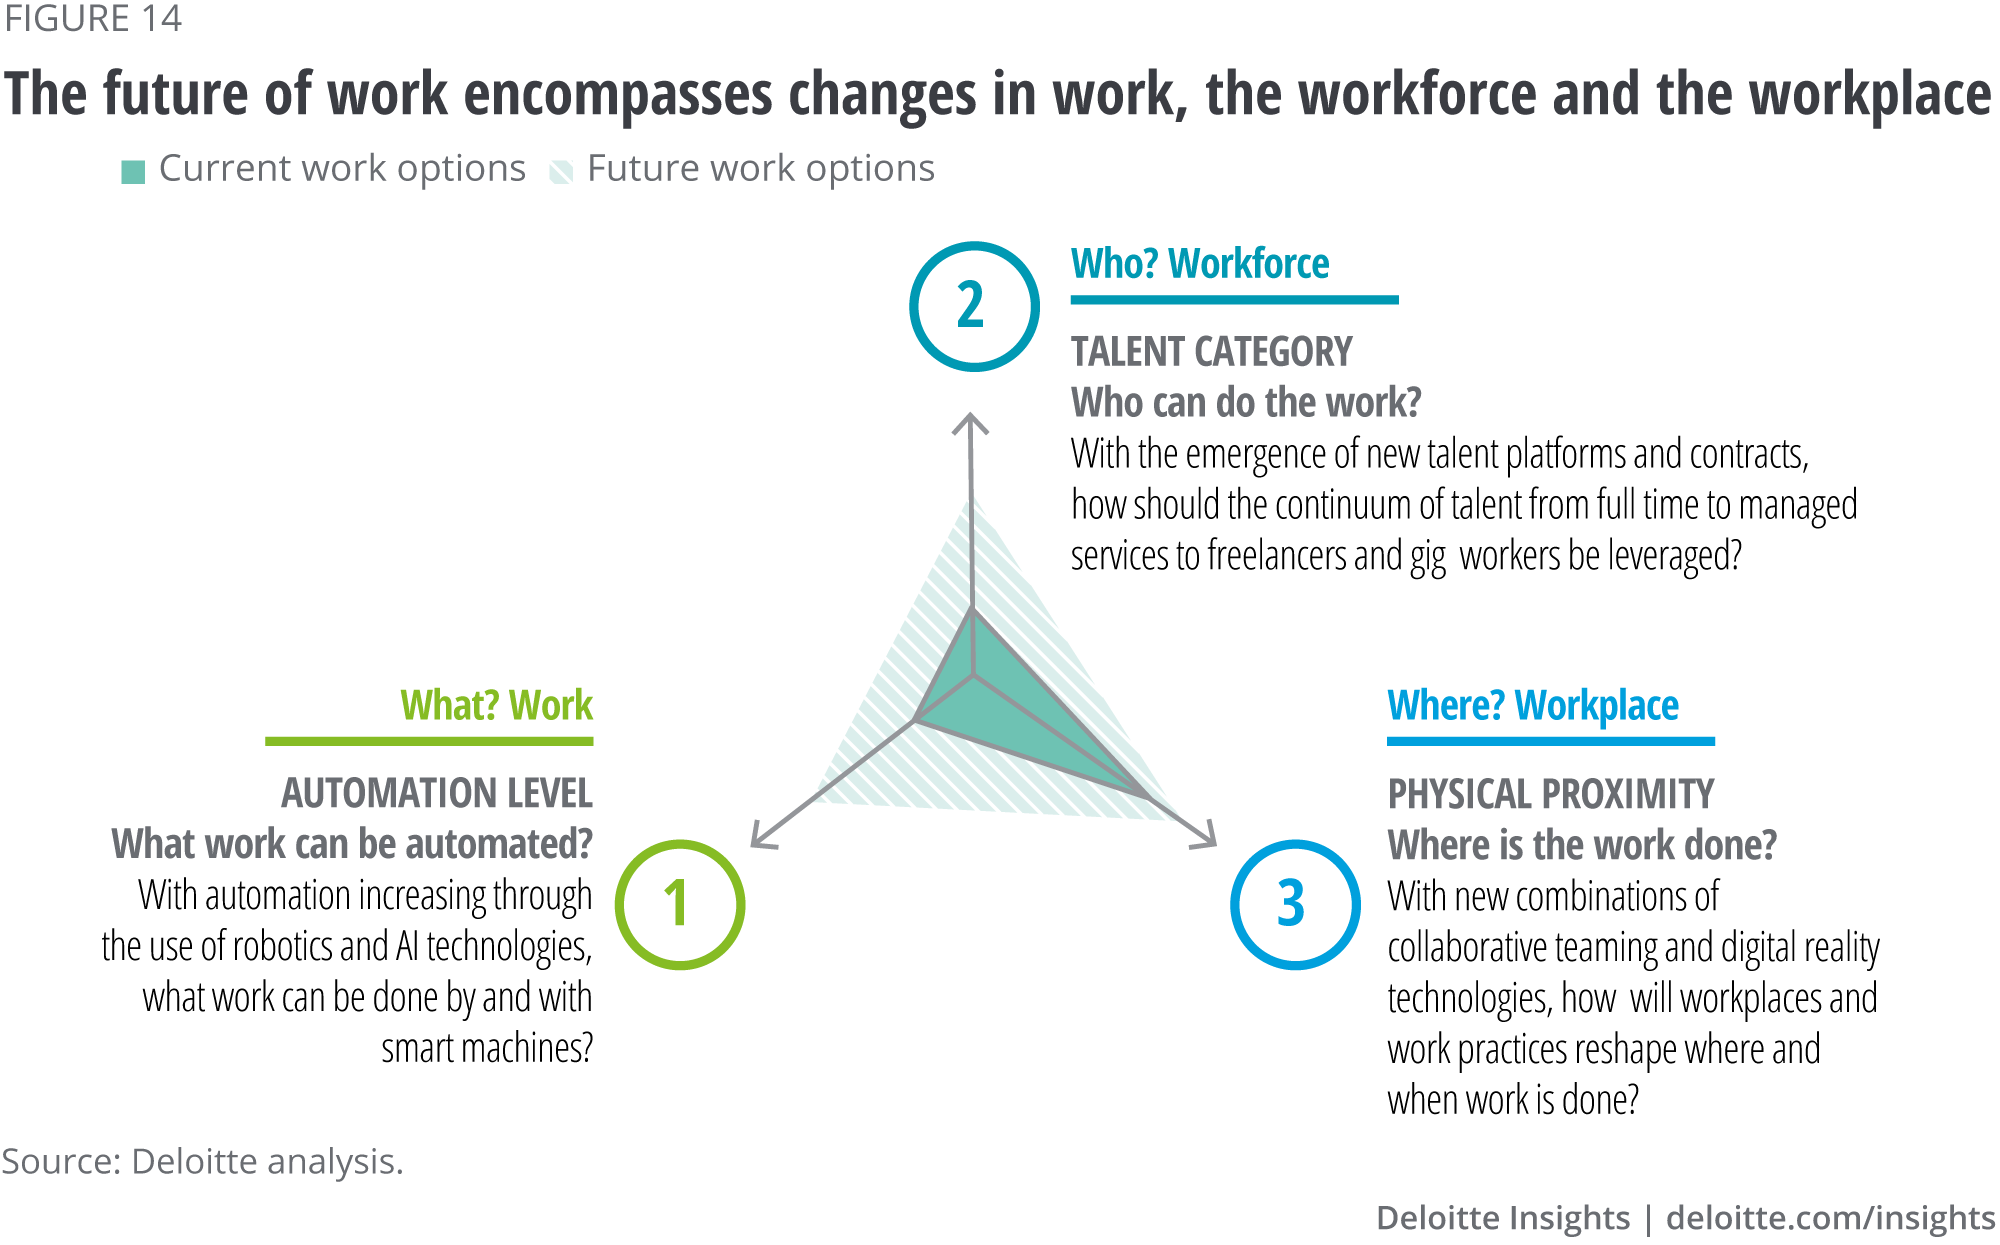 The future of work encompasses changes in work, the workforce and the workplace